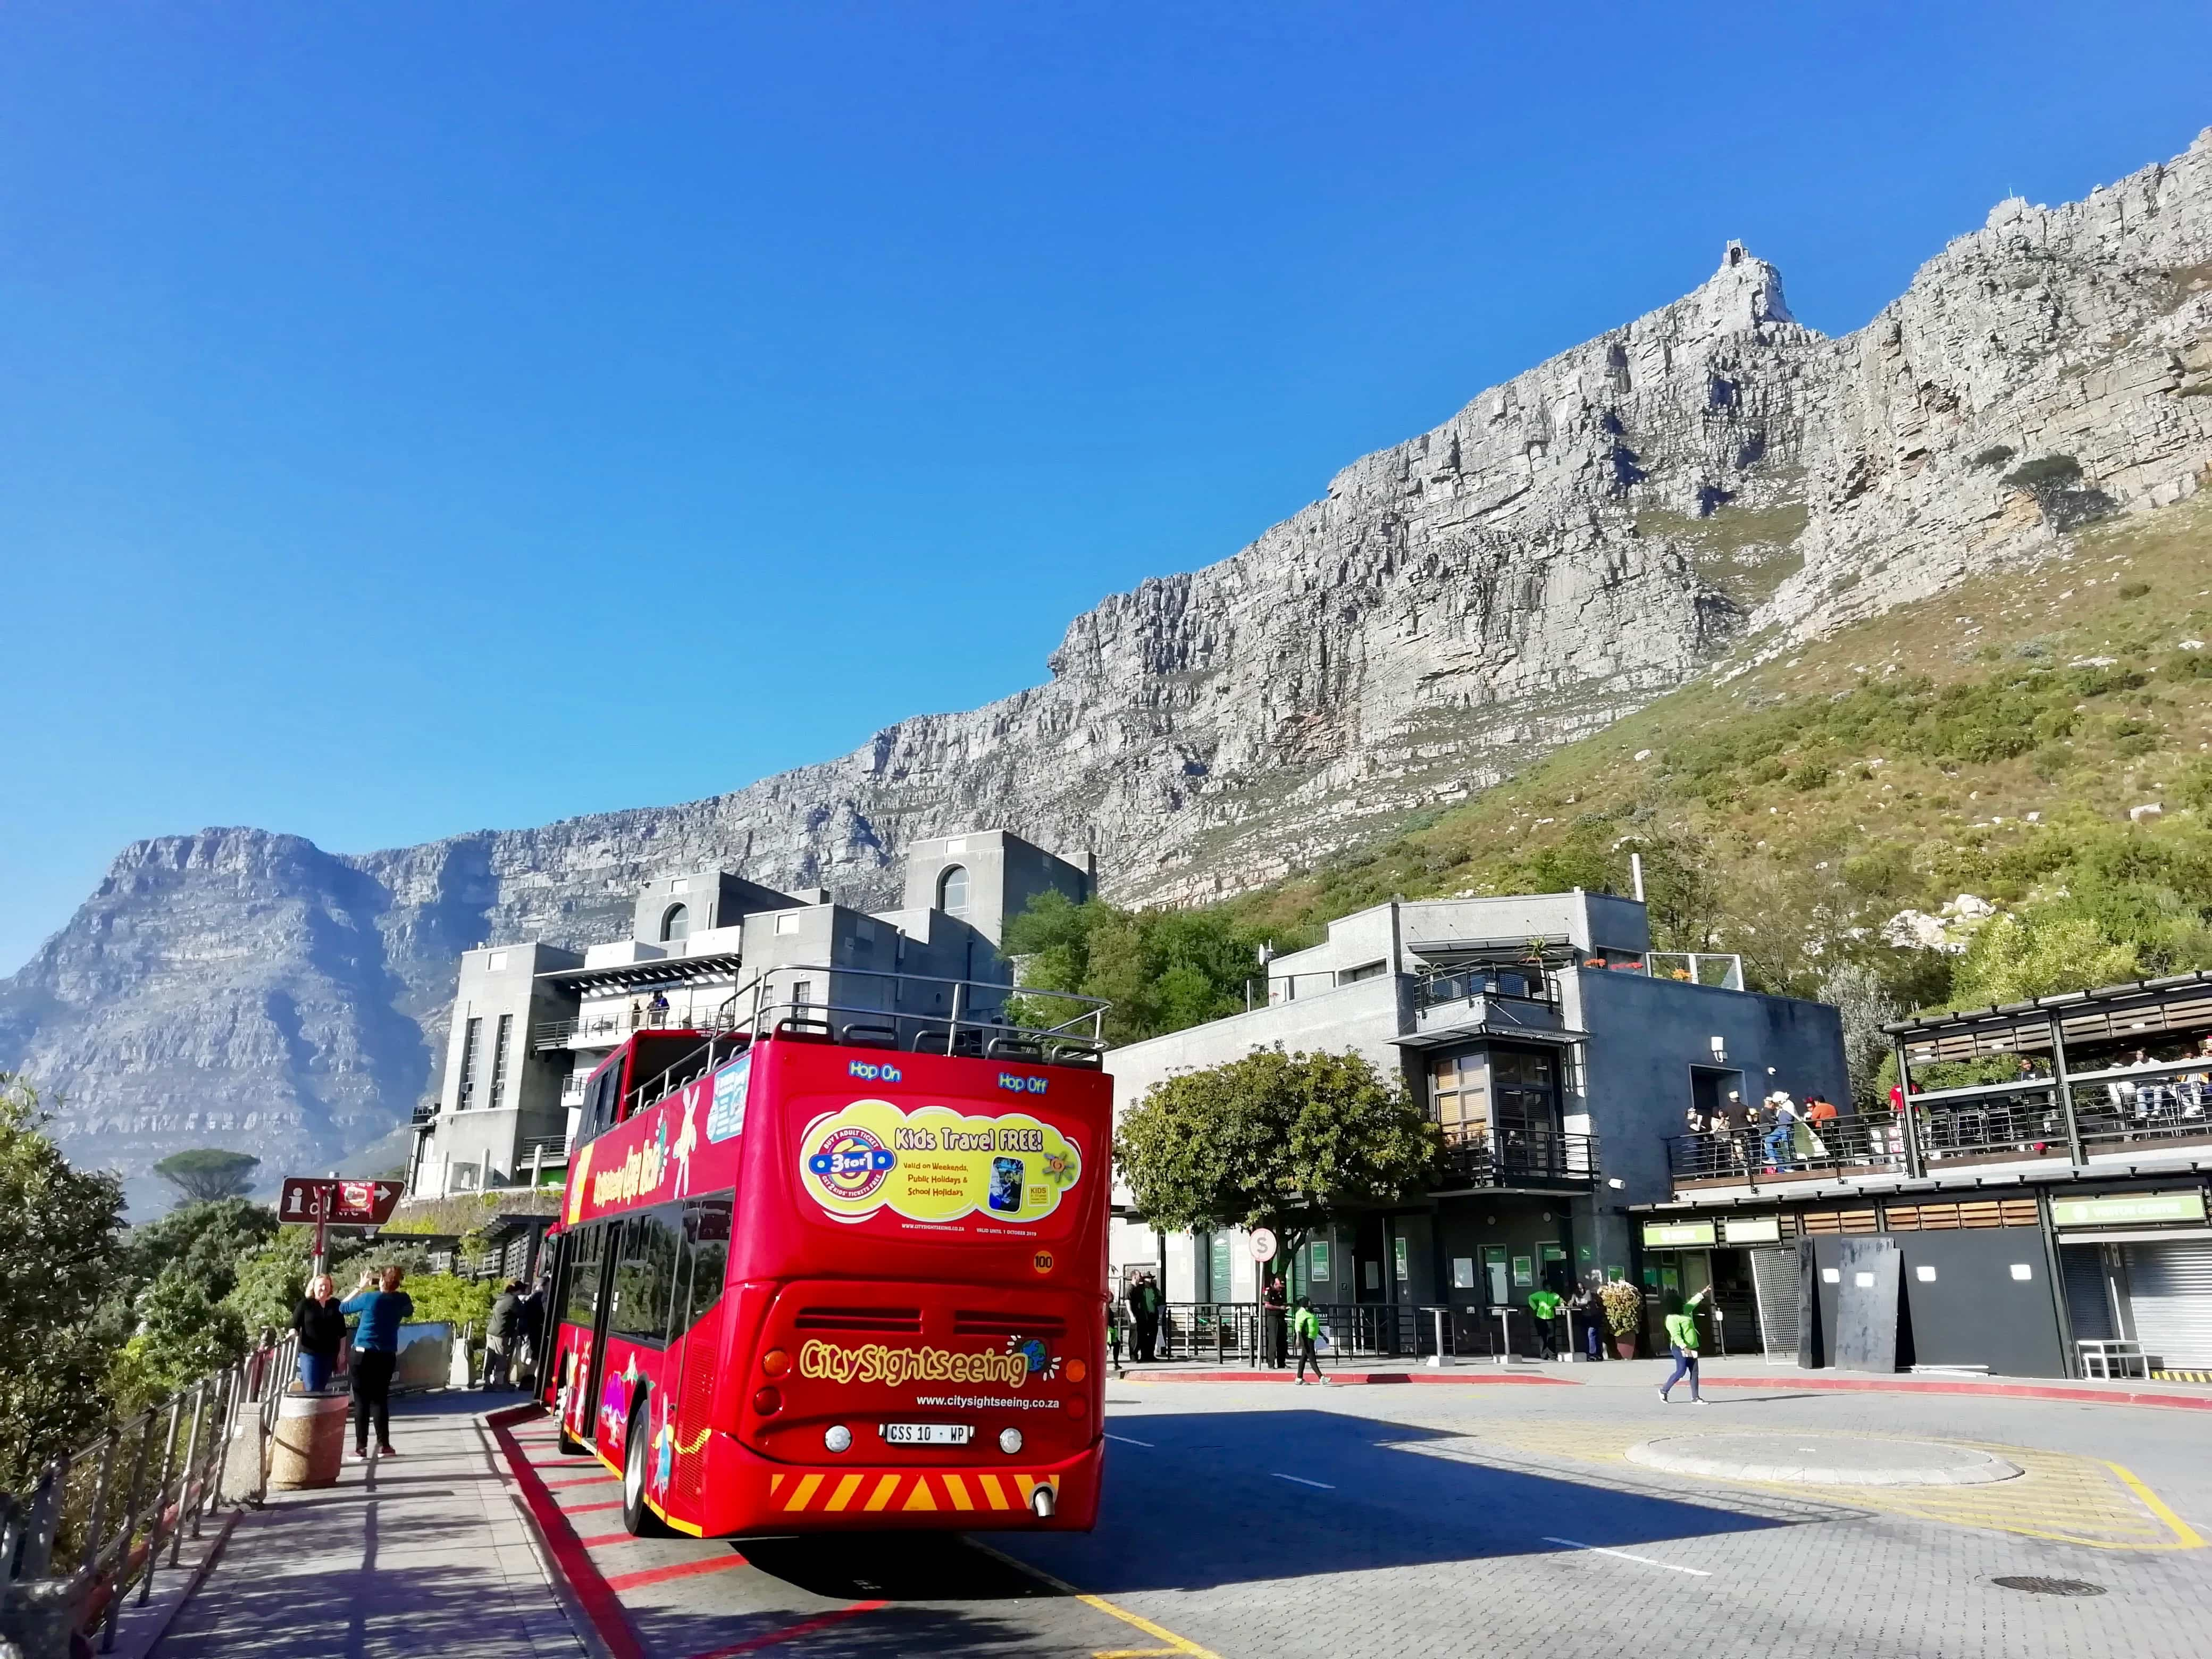 City Sightseeing Hop on Hop off bus tour in Cape Town